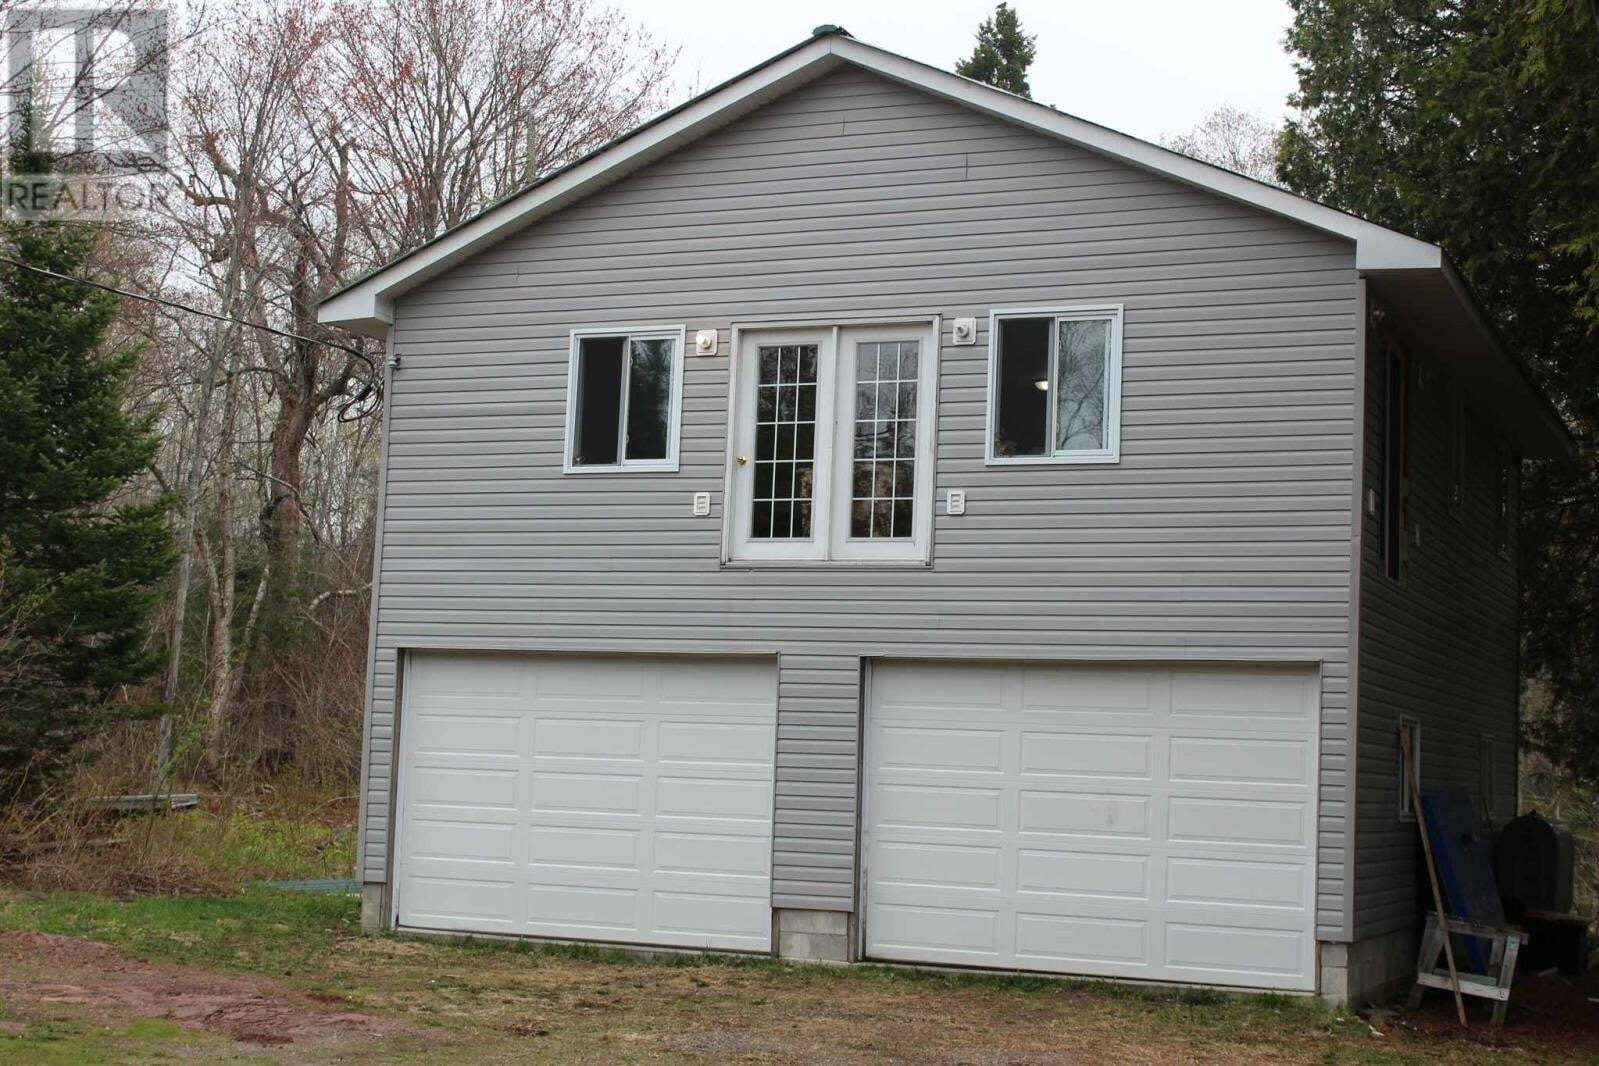 Home for sale at 1472 Bluewater Rd Goulais River Ontario - MLS: SM128639